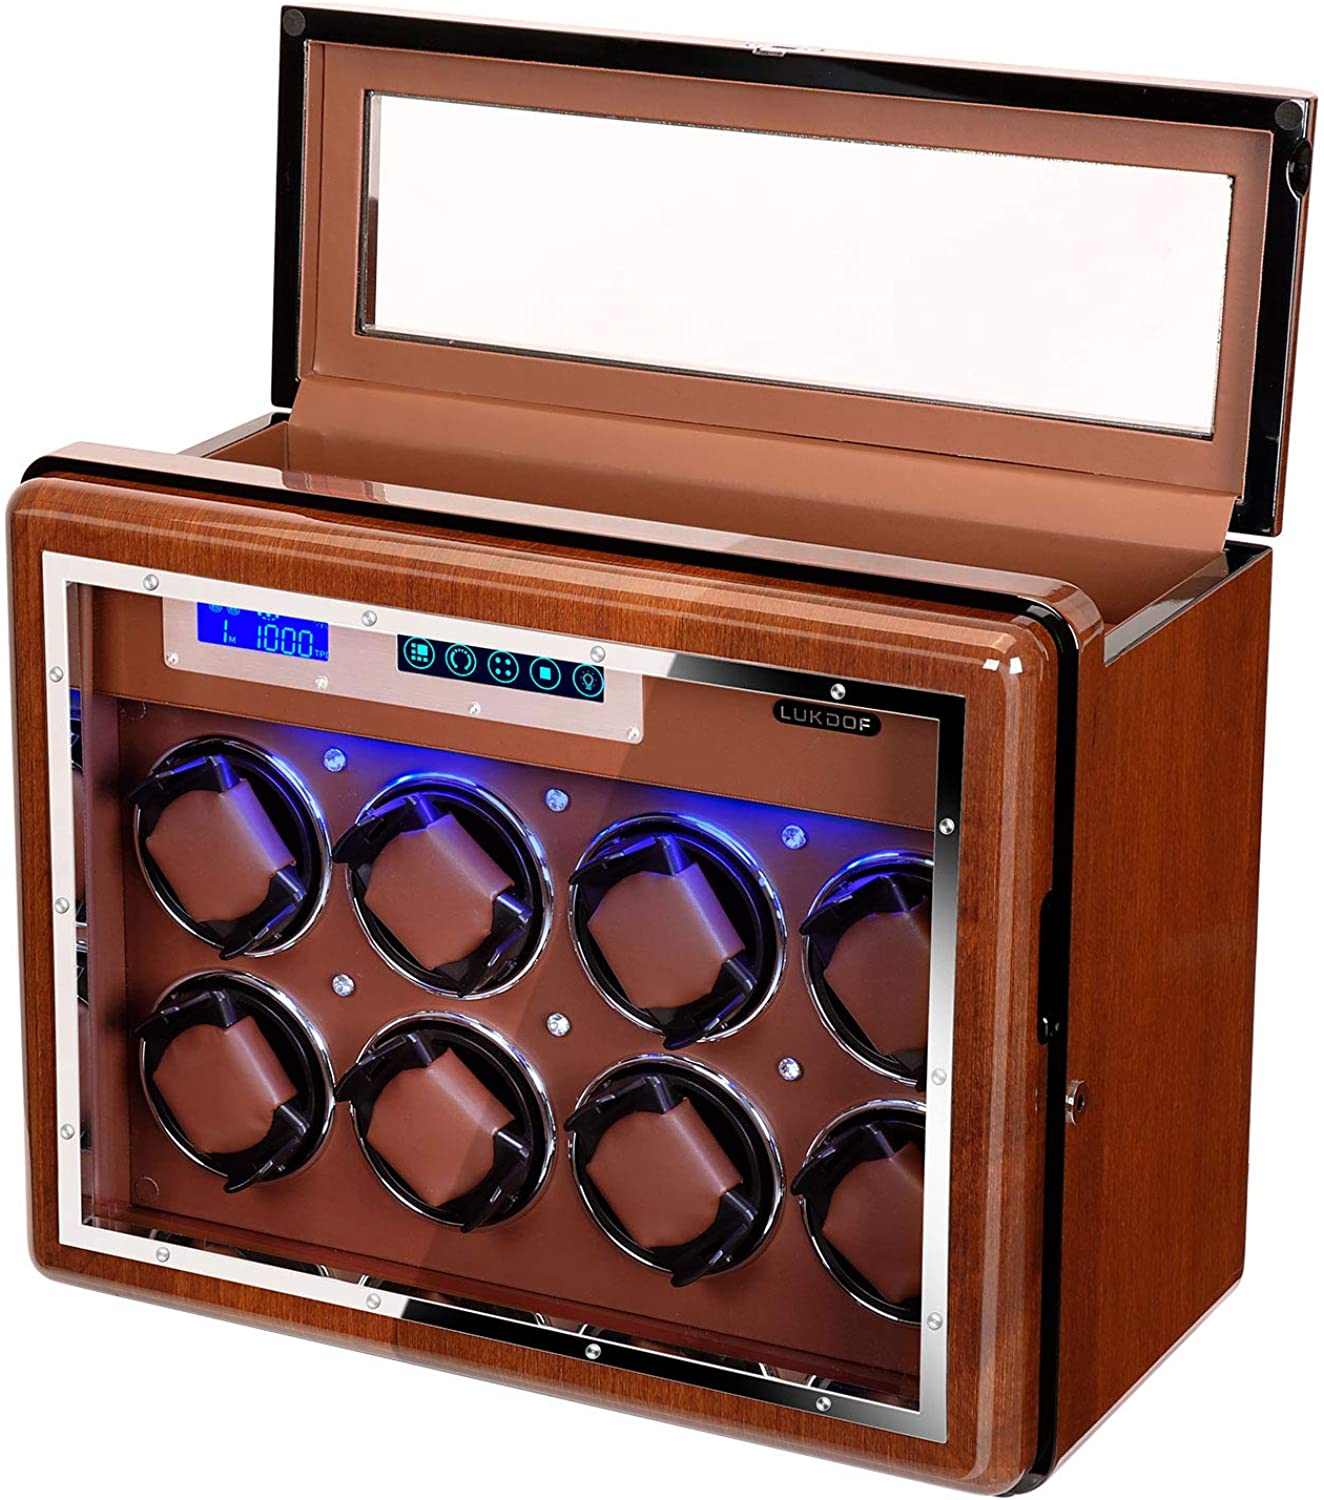 Cheap super special price Automatic Watch Winder Luxury for wit Walnut Rolex Miami Mall